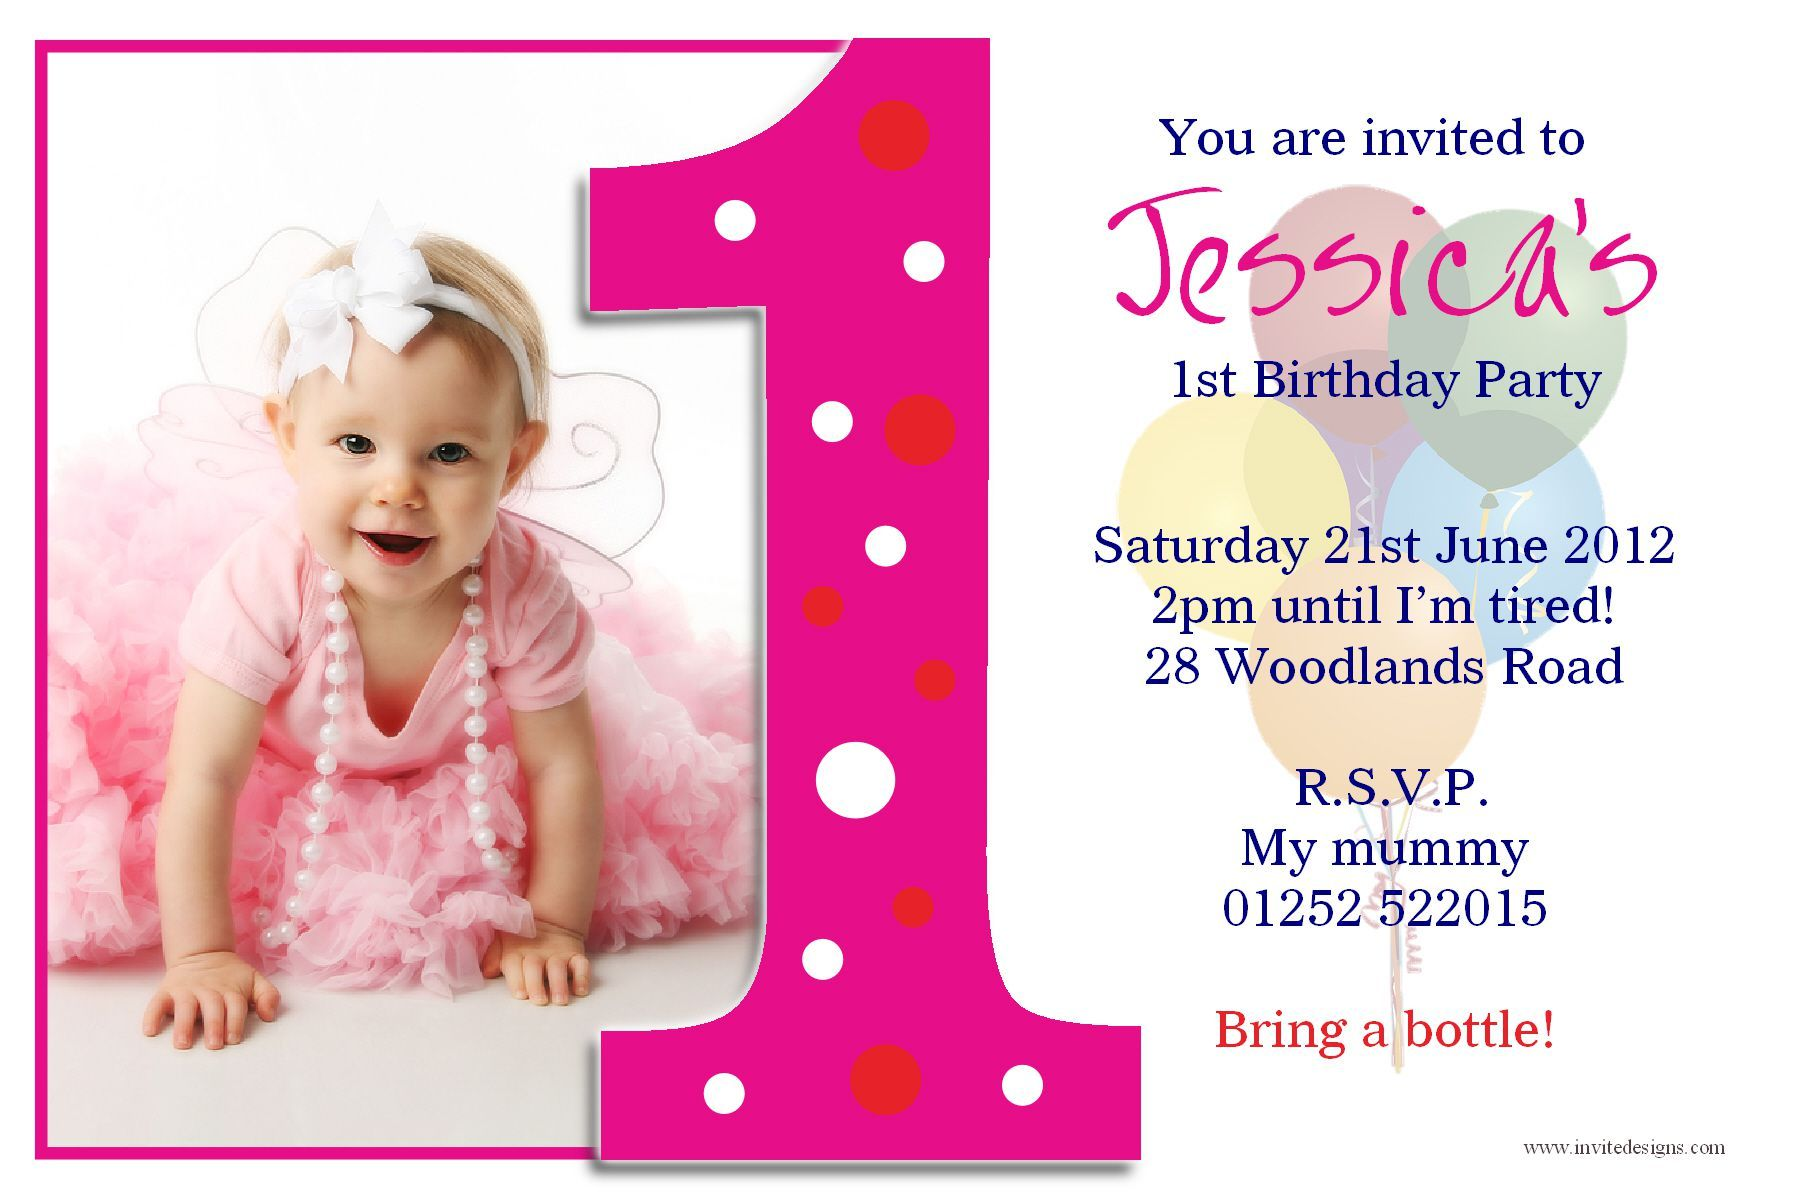 Birthday Invitation Template Free Birthday Invite Template Birthda Photo Birthday Invitations 1st Birthday Invitations Girl First Birthday Invitation Cards